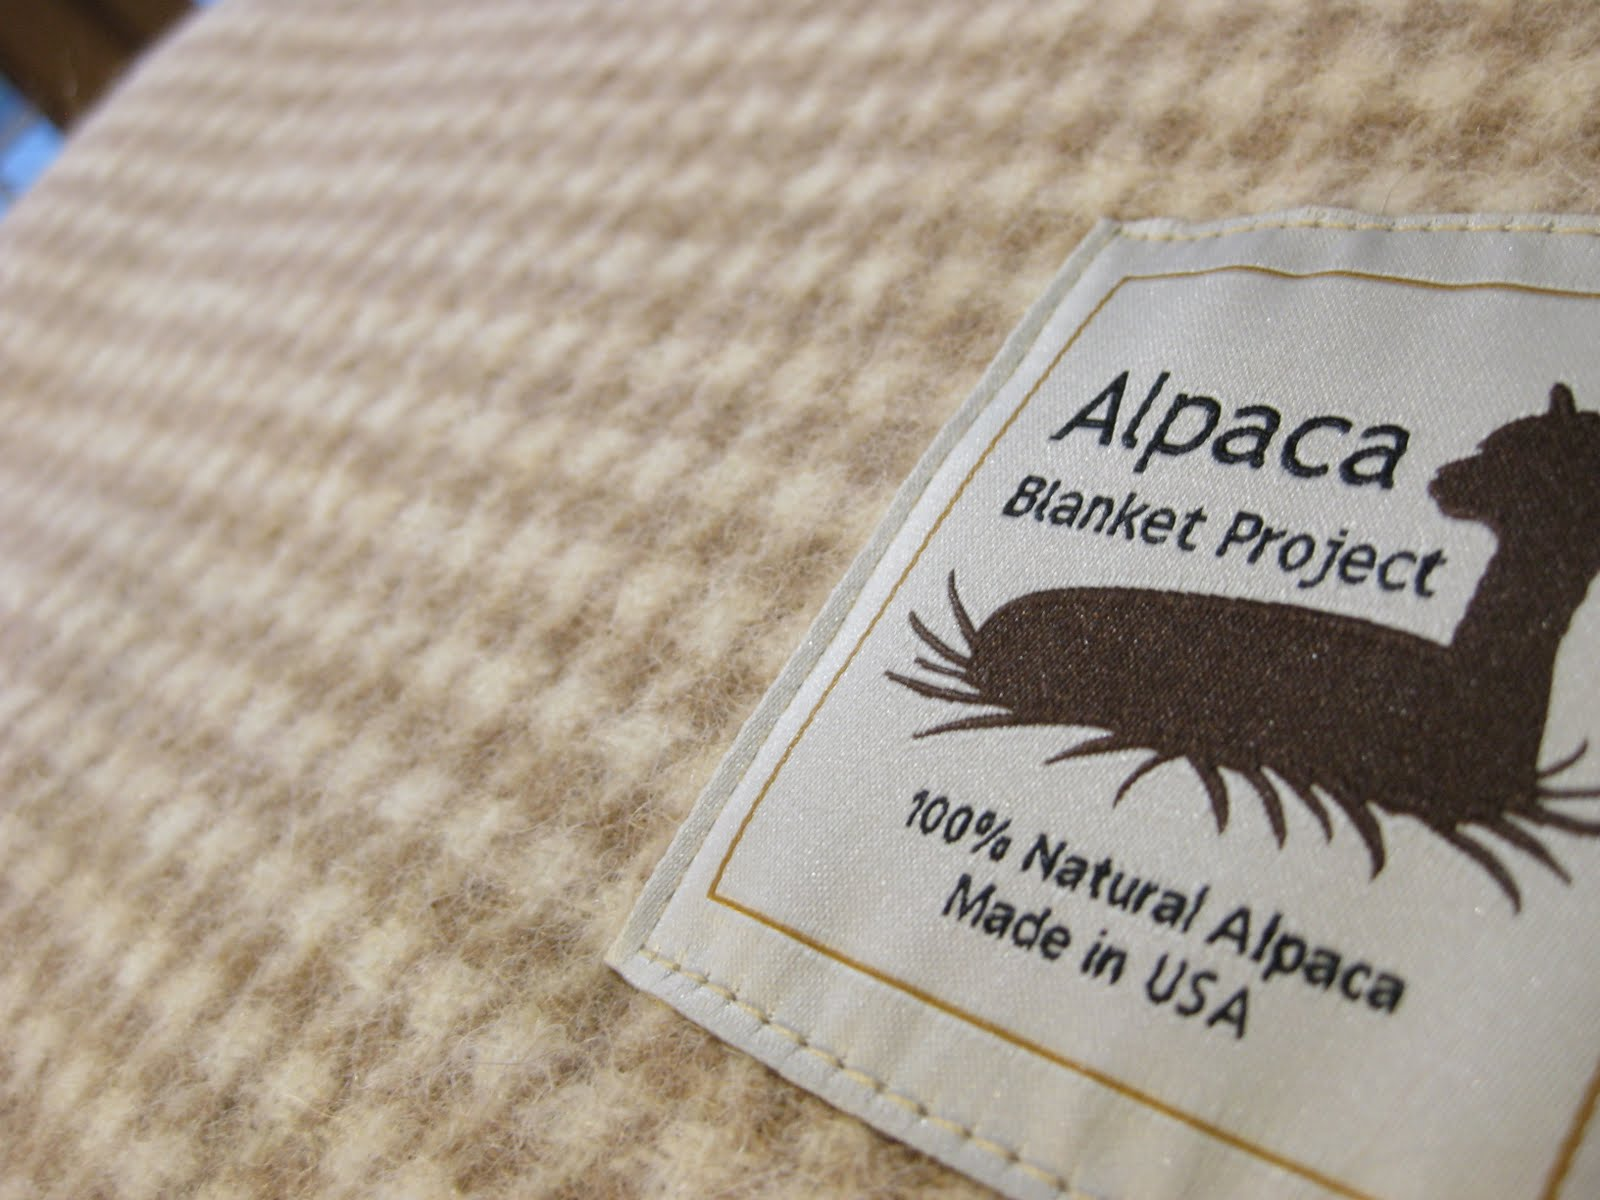 alpaca blanket project Variety of solid and plaid alpaca scarves made in the usa by pendleton with 100% us bred alpaca.